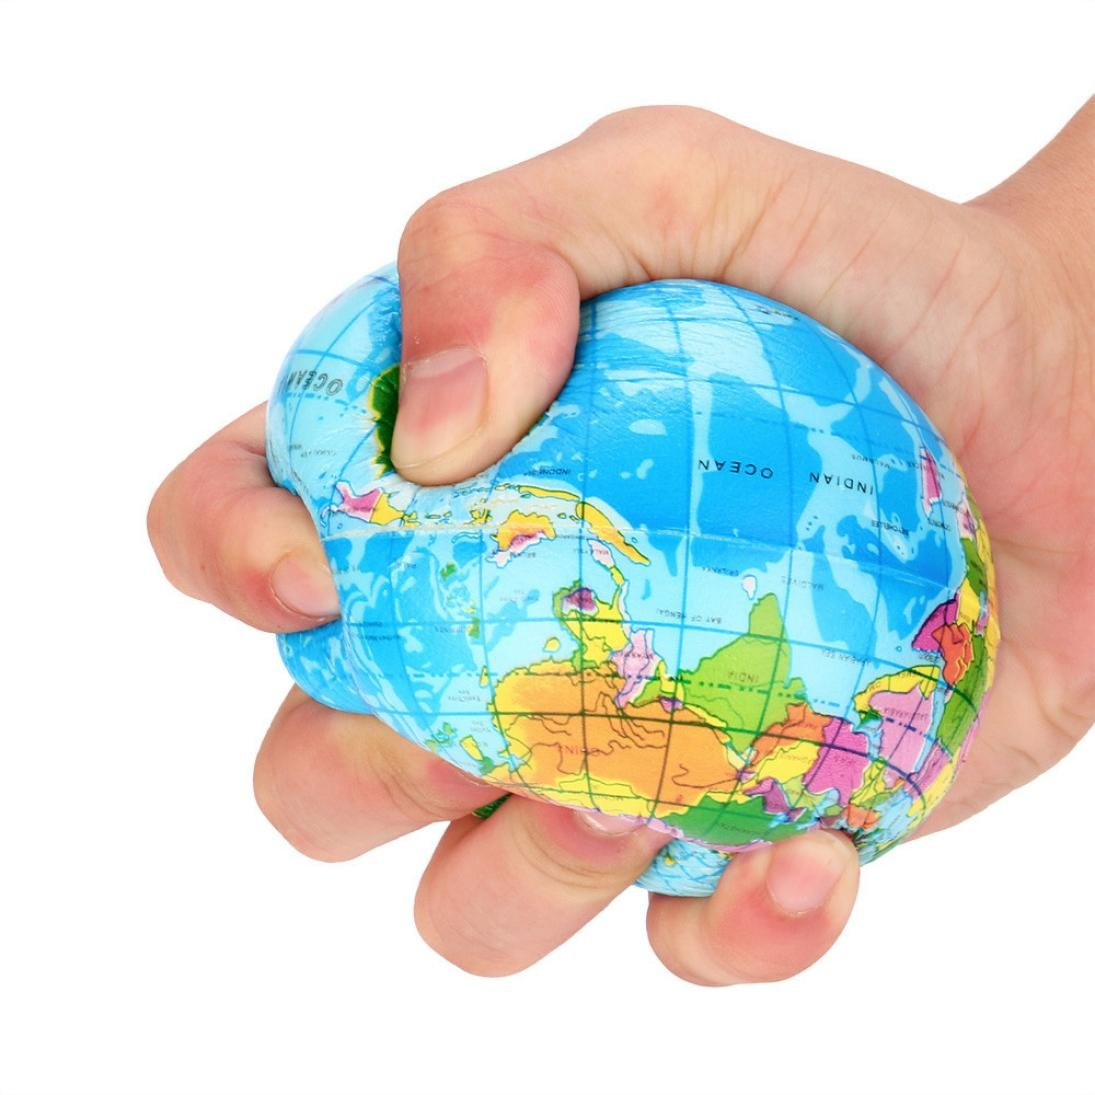 Amazon earth squishy toys reyo stress relief world map foam amazon earth squishy toys reyo stress relief world map foam ball atlas globe palm ball planet earth ball christmas gifts blue 6cm toys games gumiabroncs Image collections